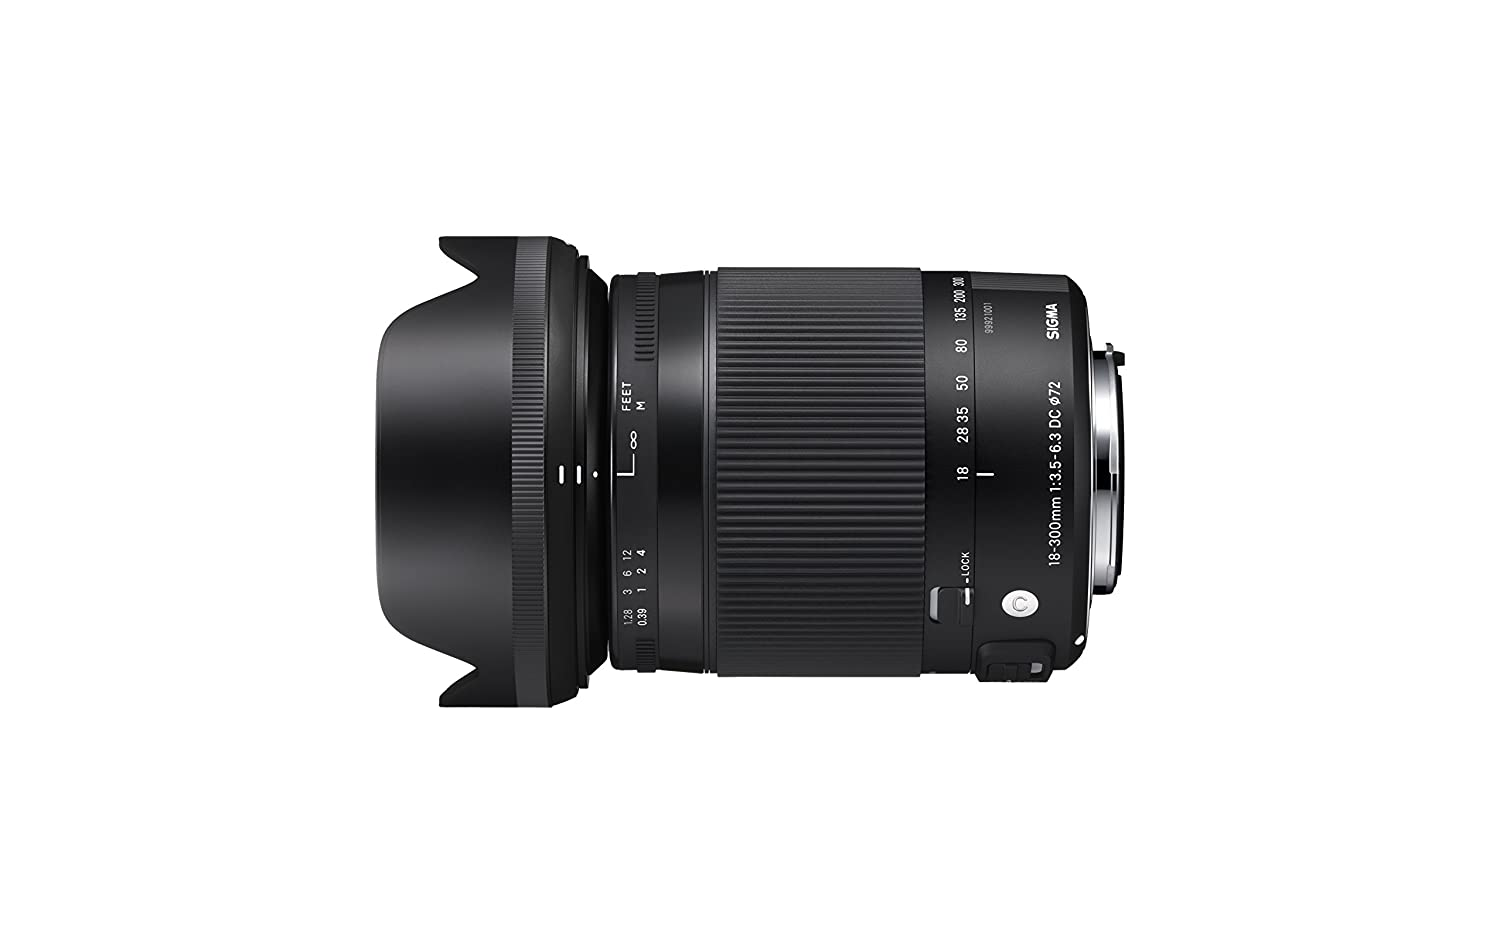 Sigma 18-300mm F3.5-6.3 DC Macro OS HSM Lens for Canon